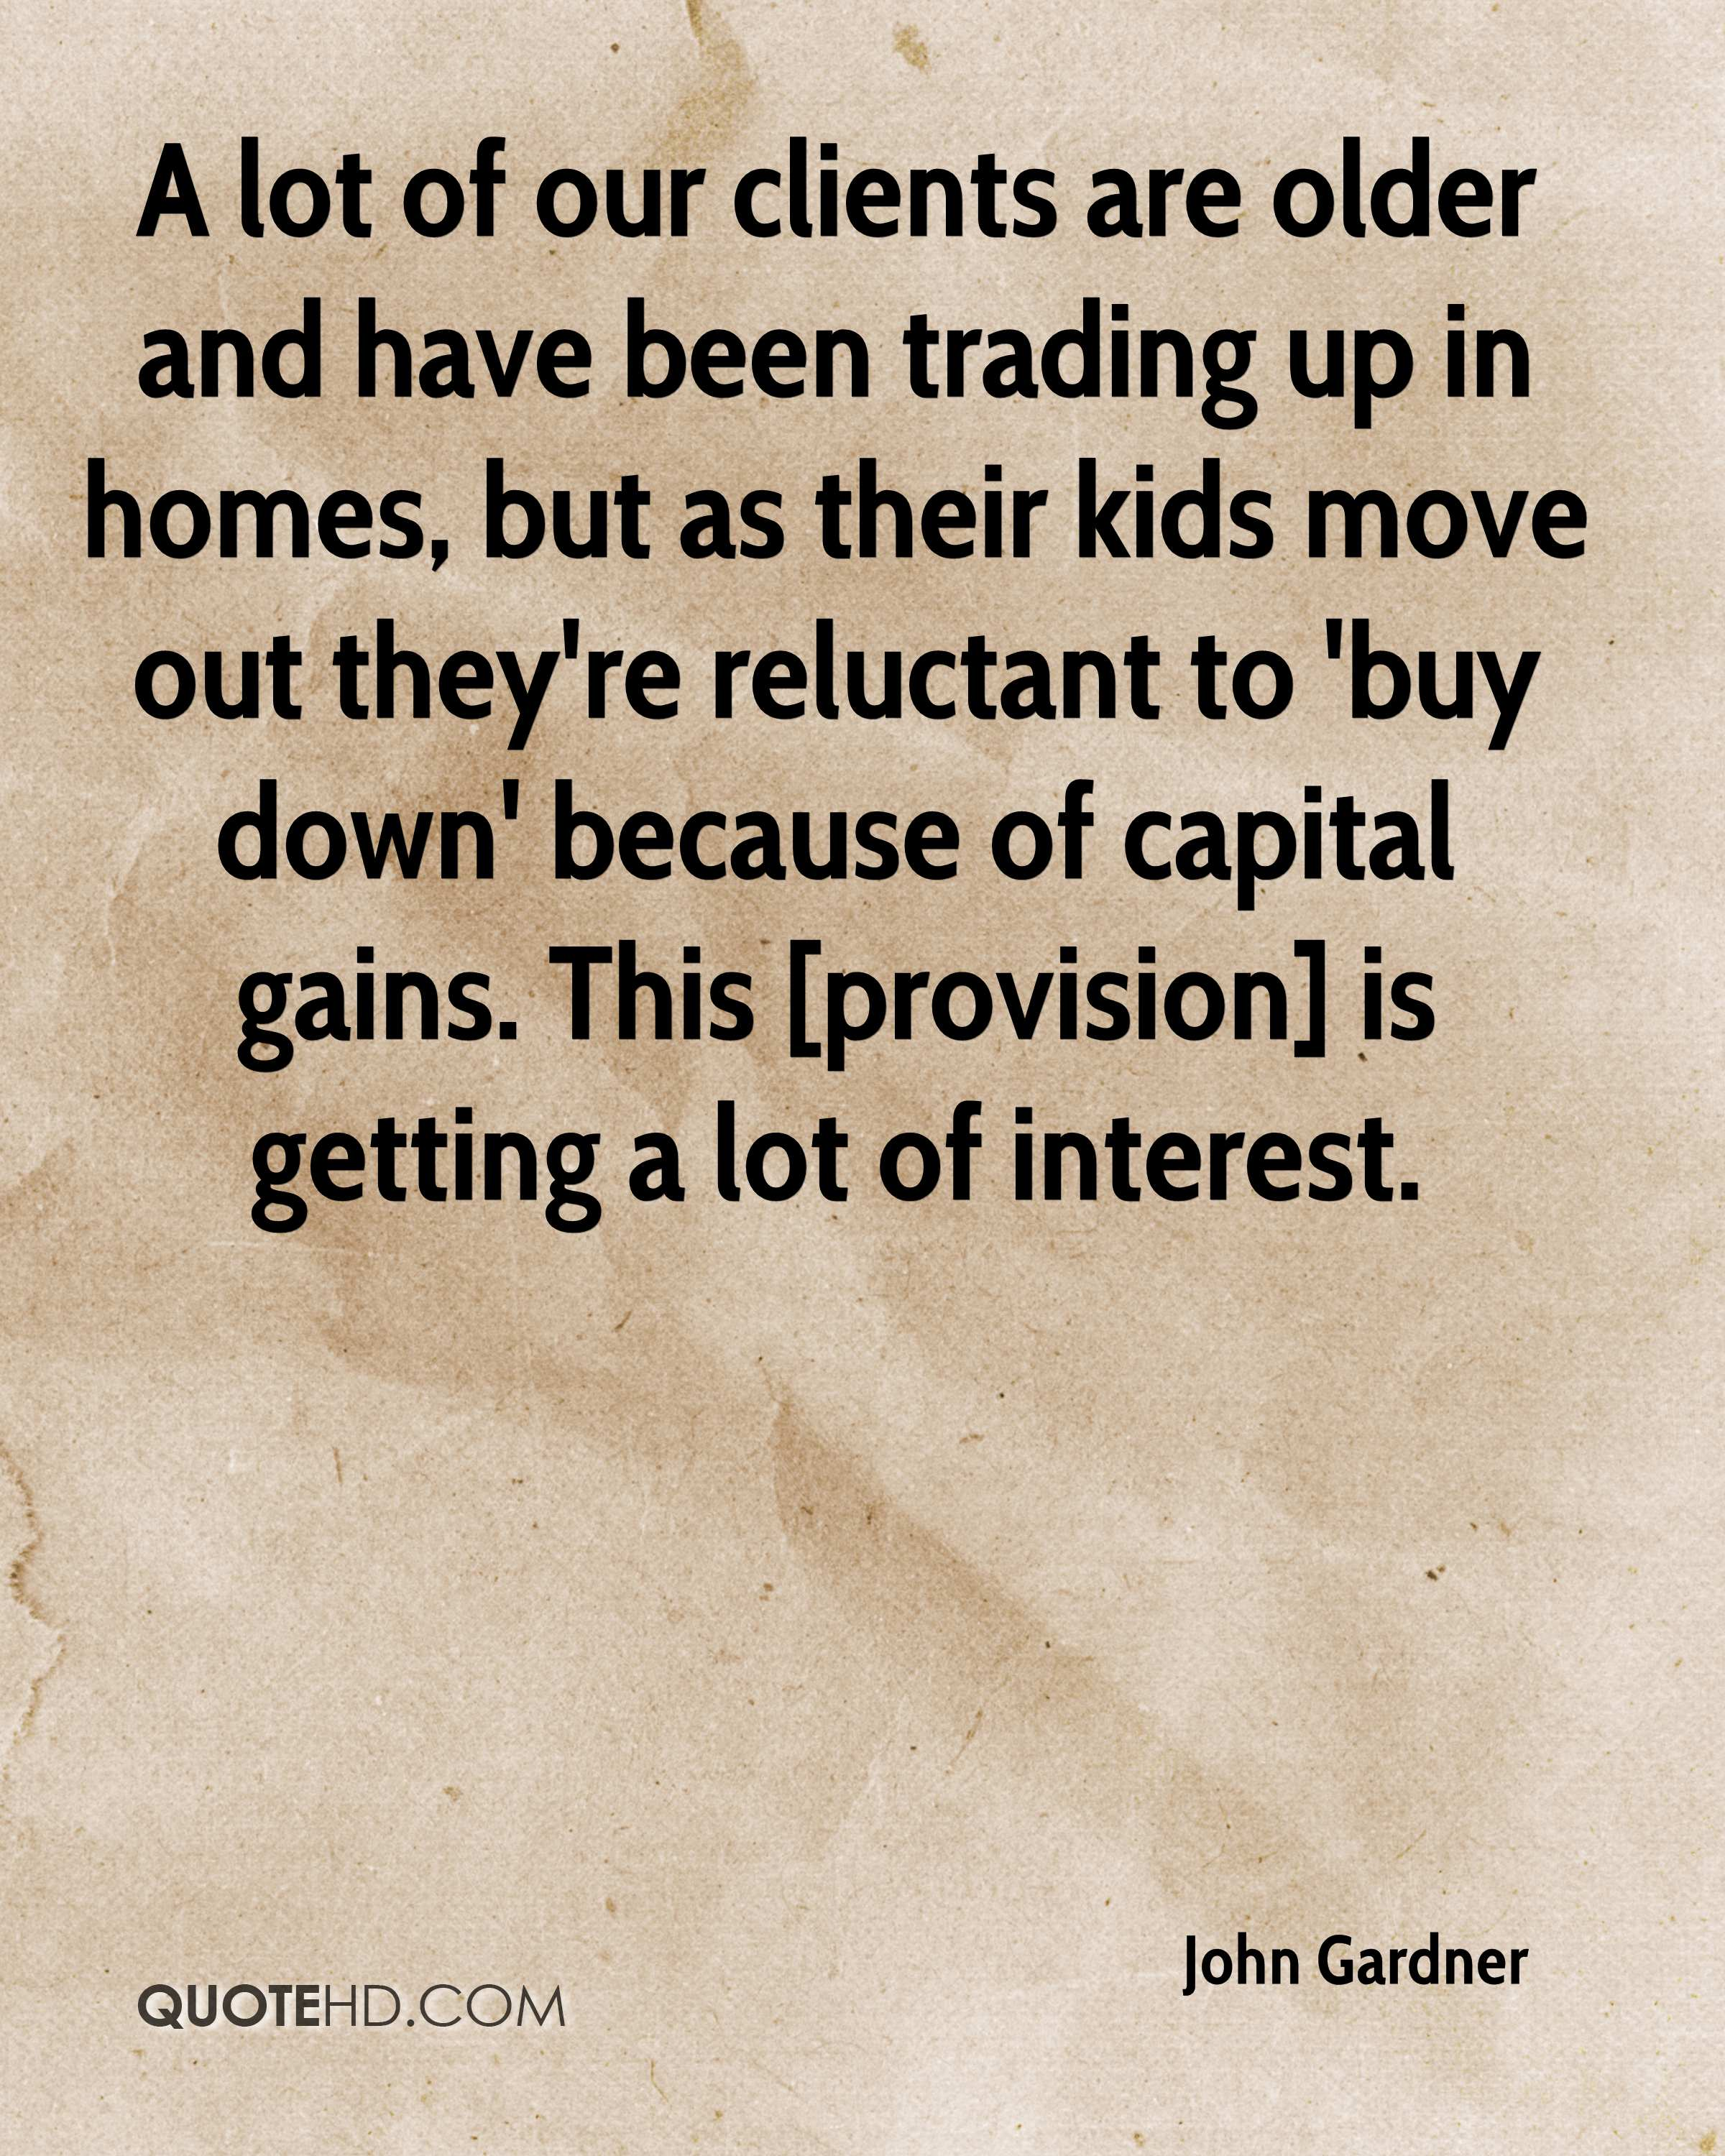 A lot of our clients are older and have been trading up in homes, but as their kids move out they're reluctant to 'buy down' because of capital gains. This [provision] is getting a lot of interest.